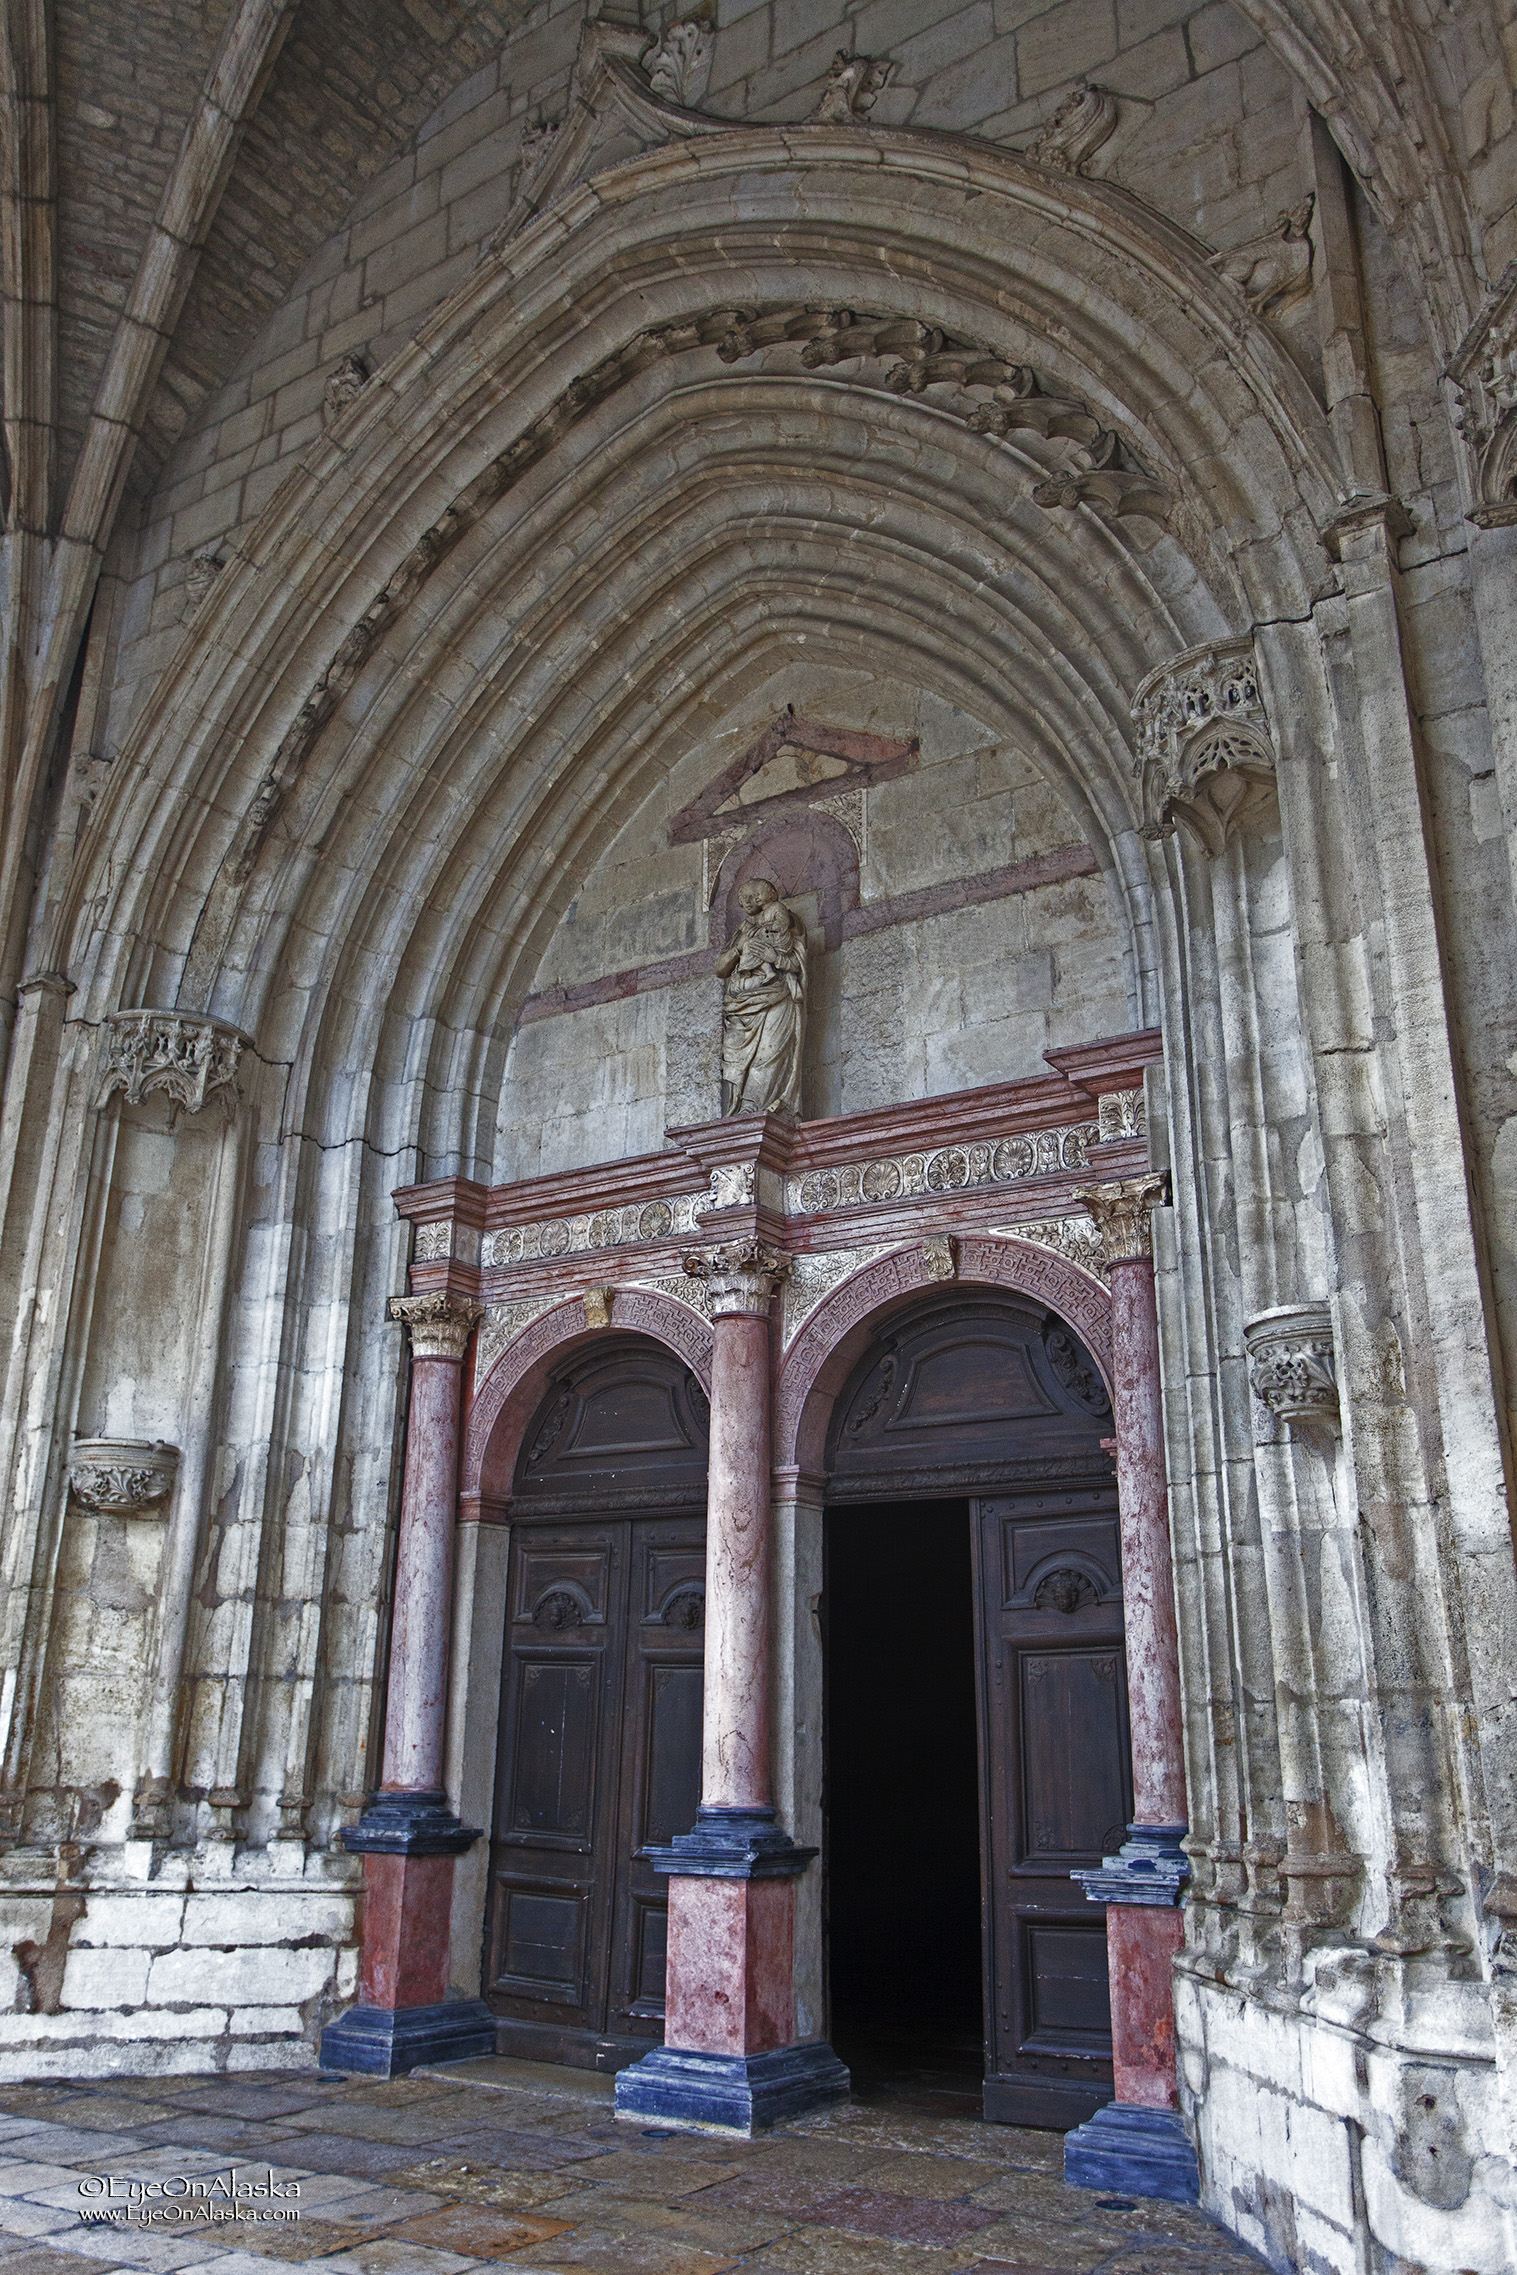 Entrance to the Basilica.